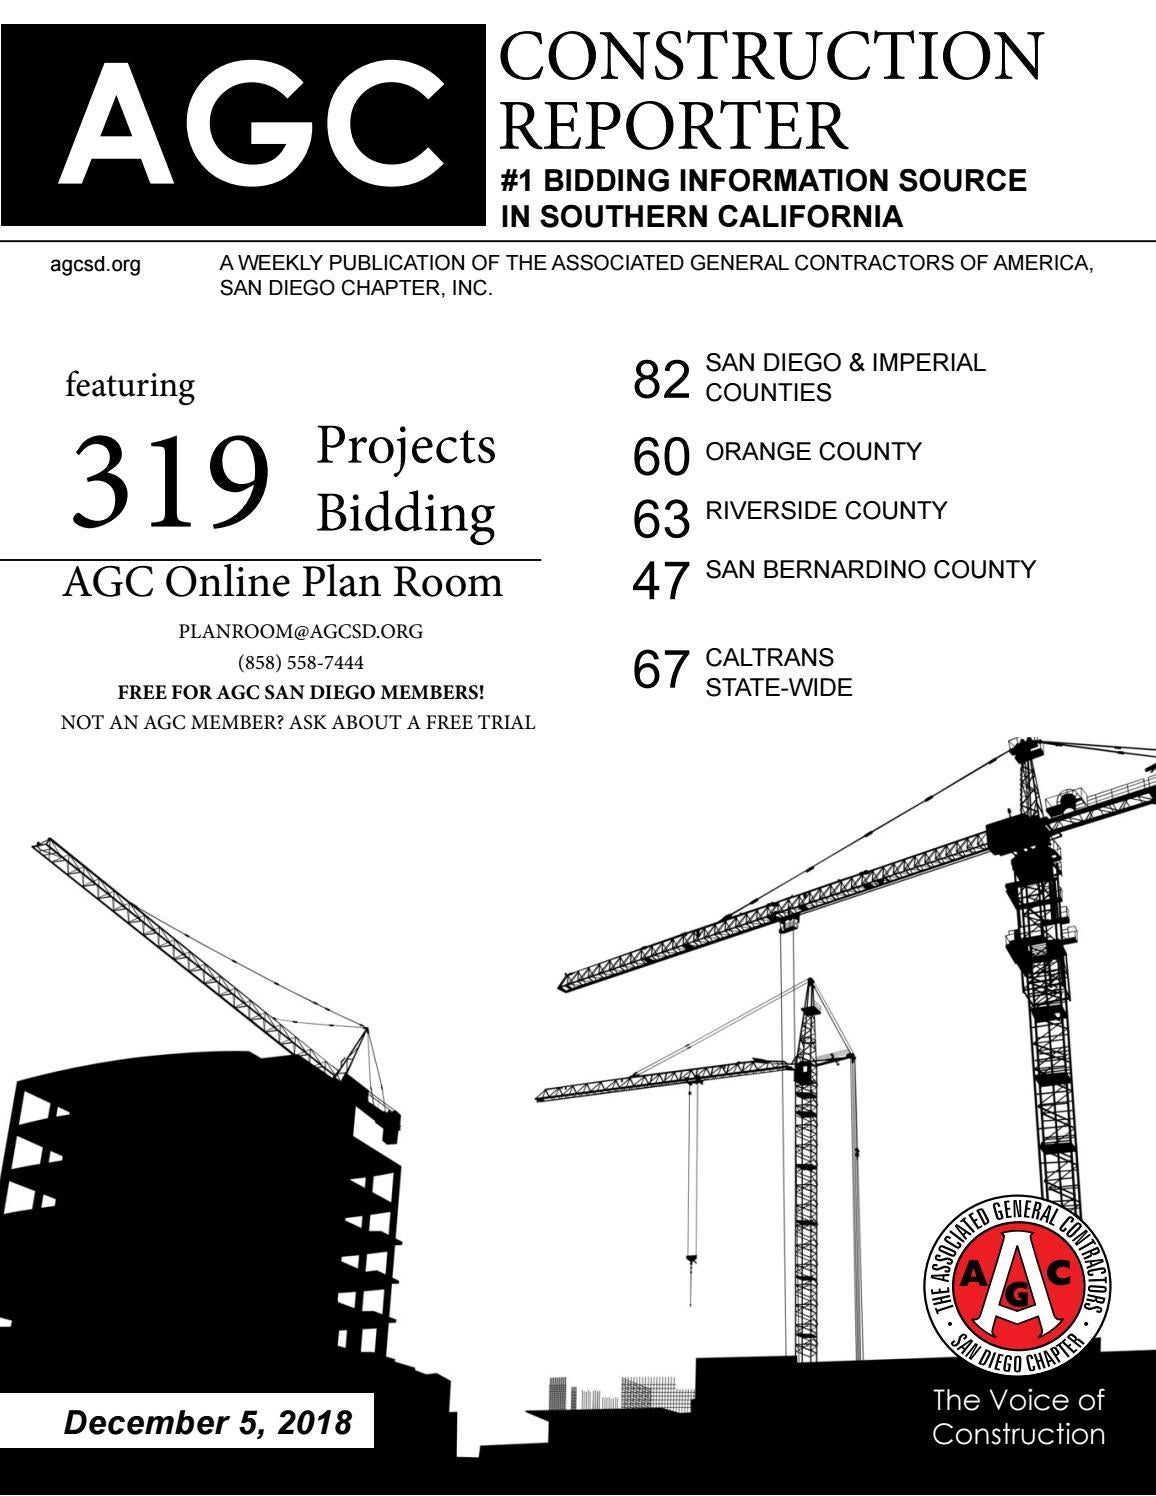 AGC Construction Reporter - December 5, 2018 by AGC San